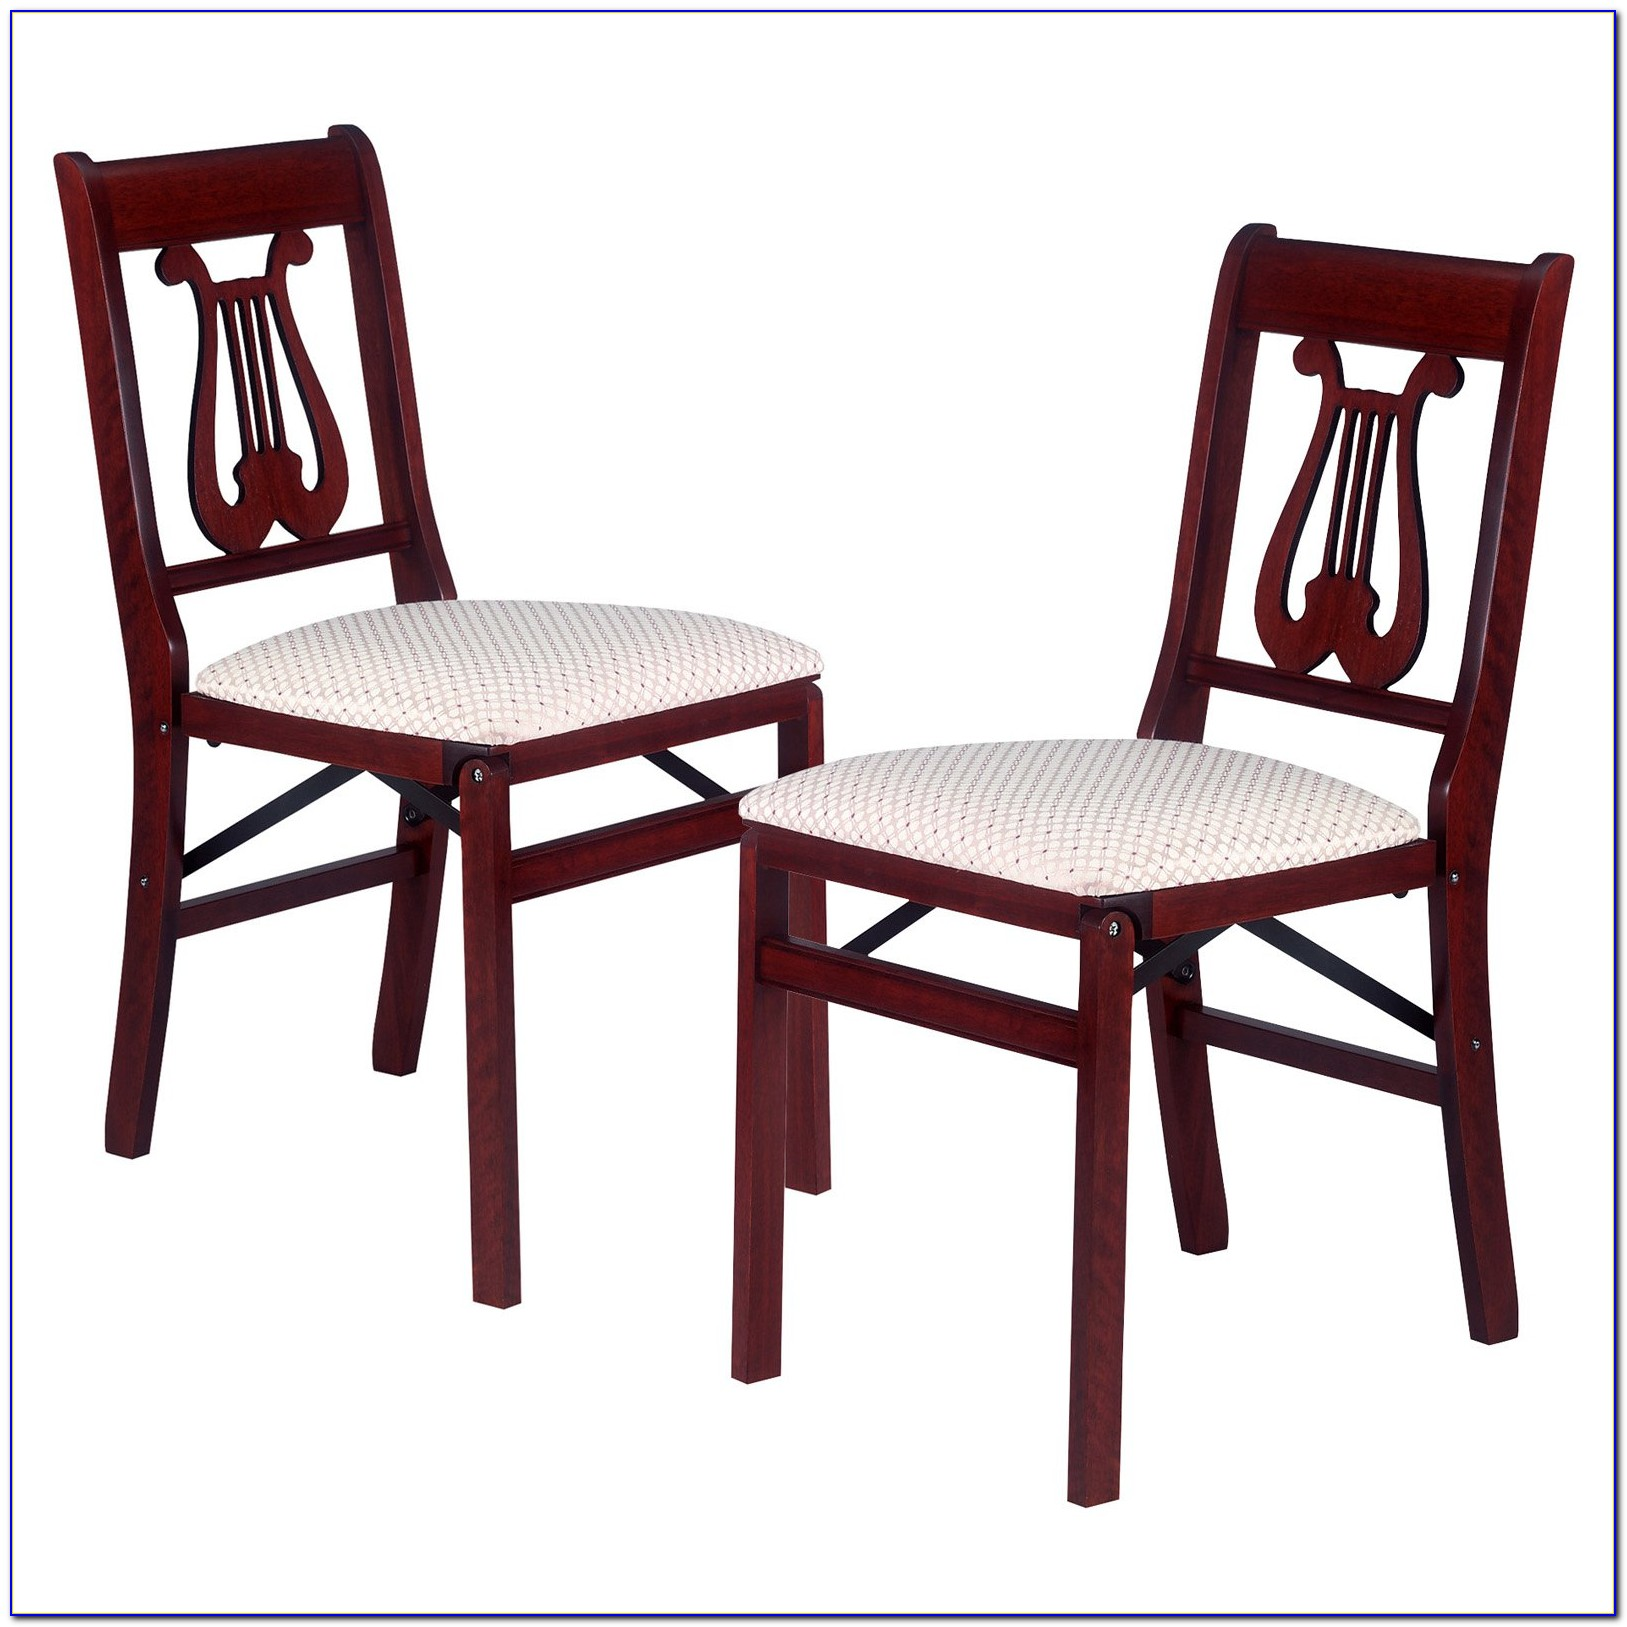 Stakmore Folding Chairs Fruitwood